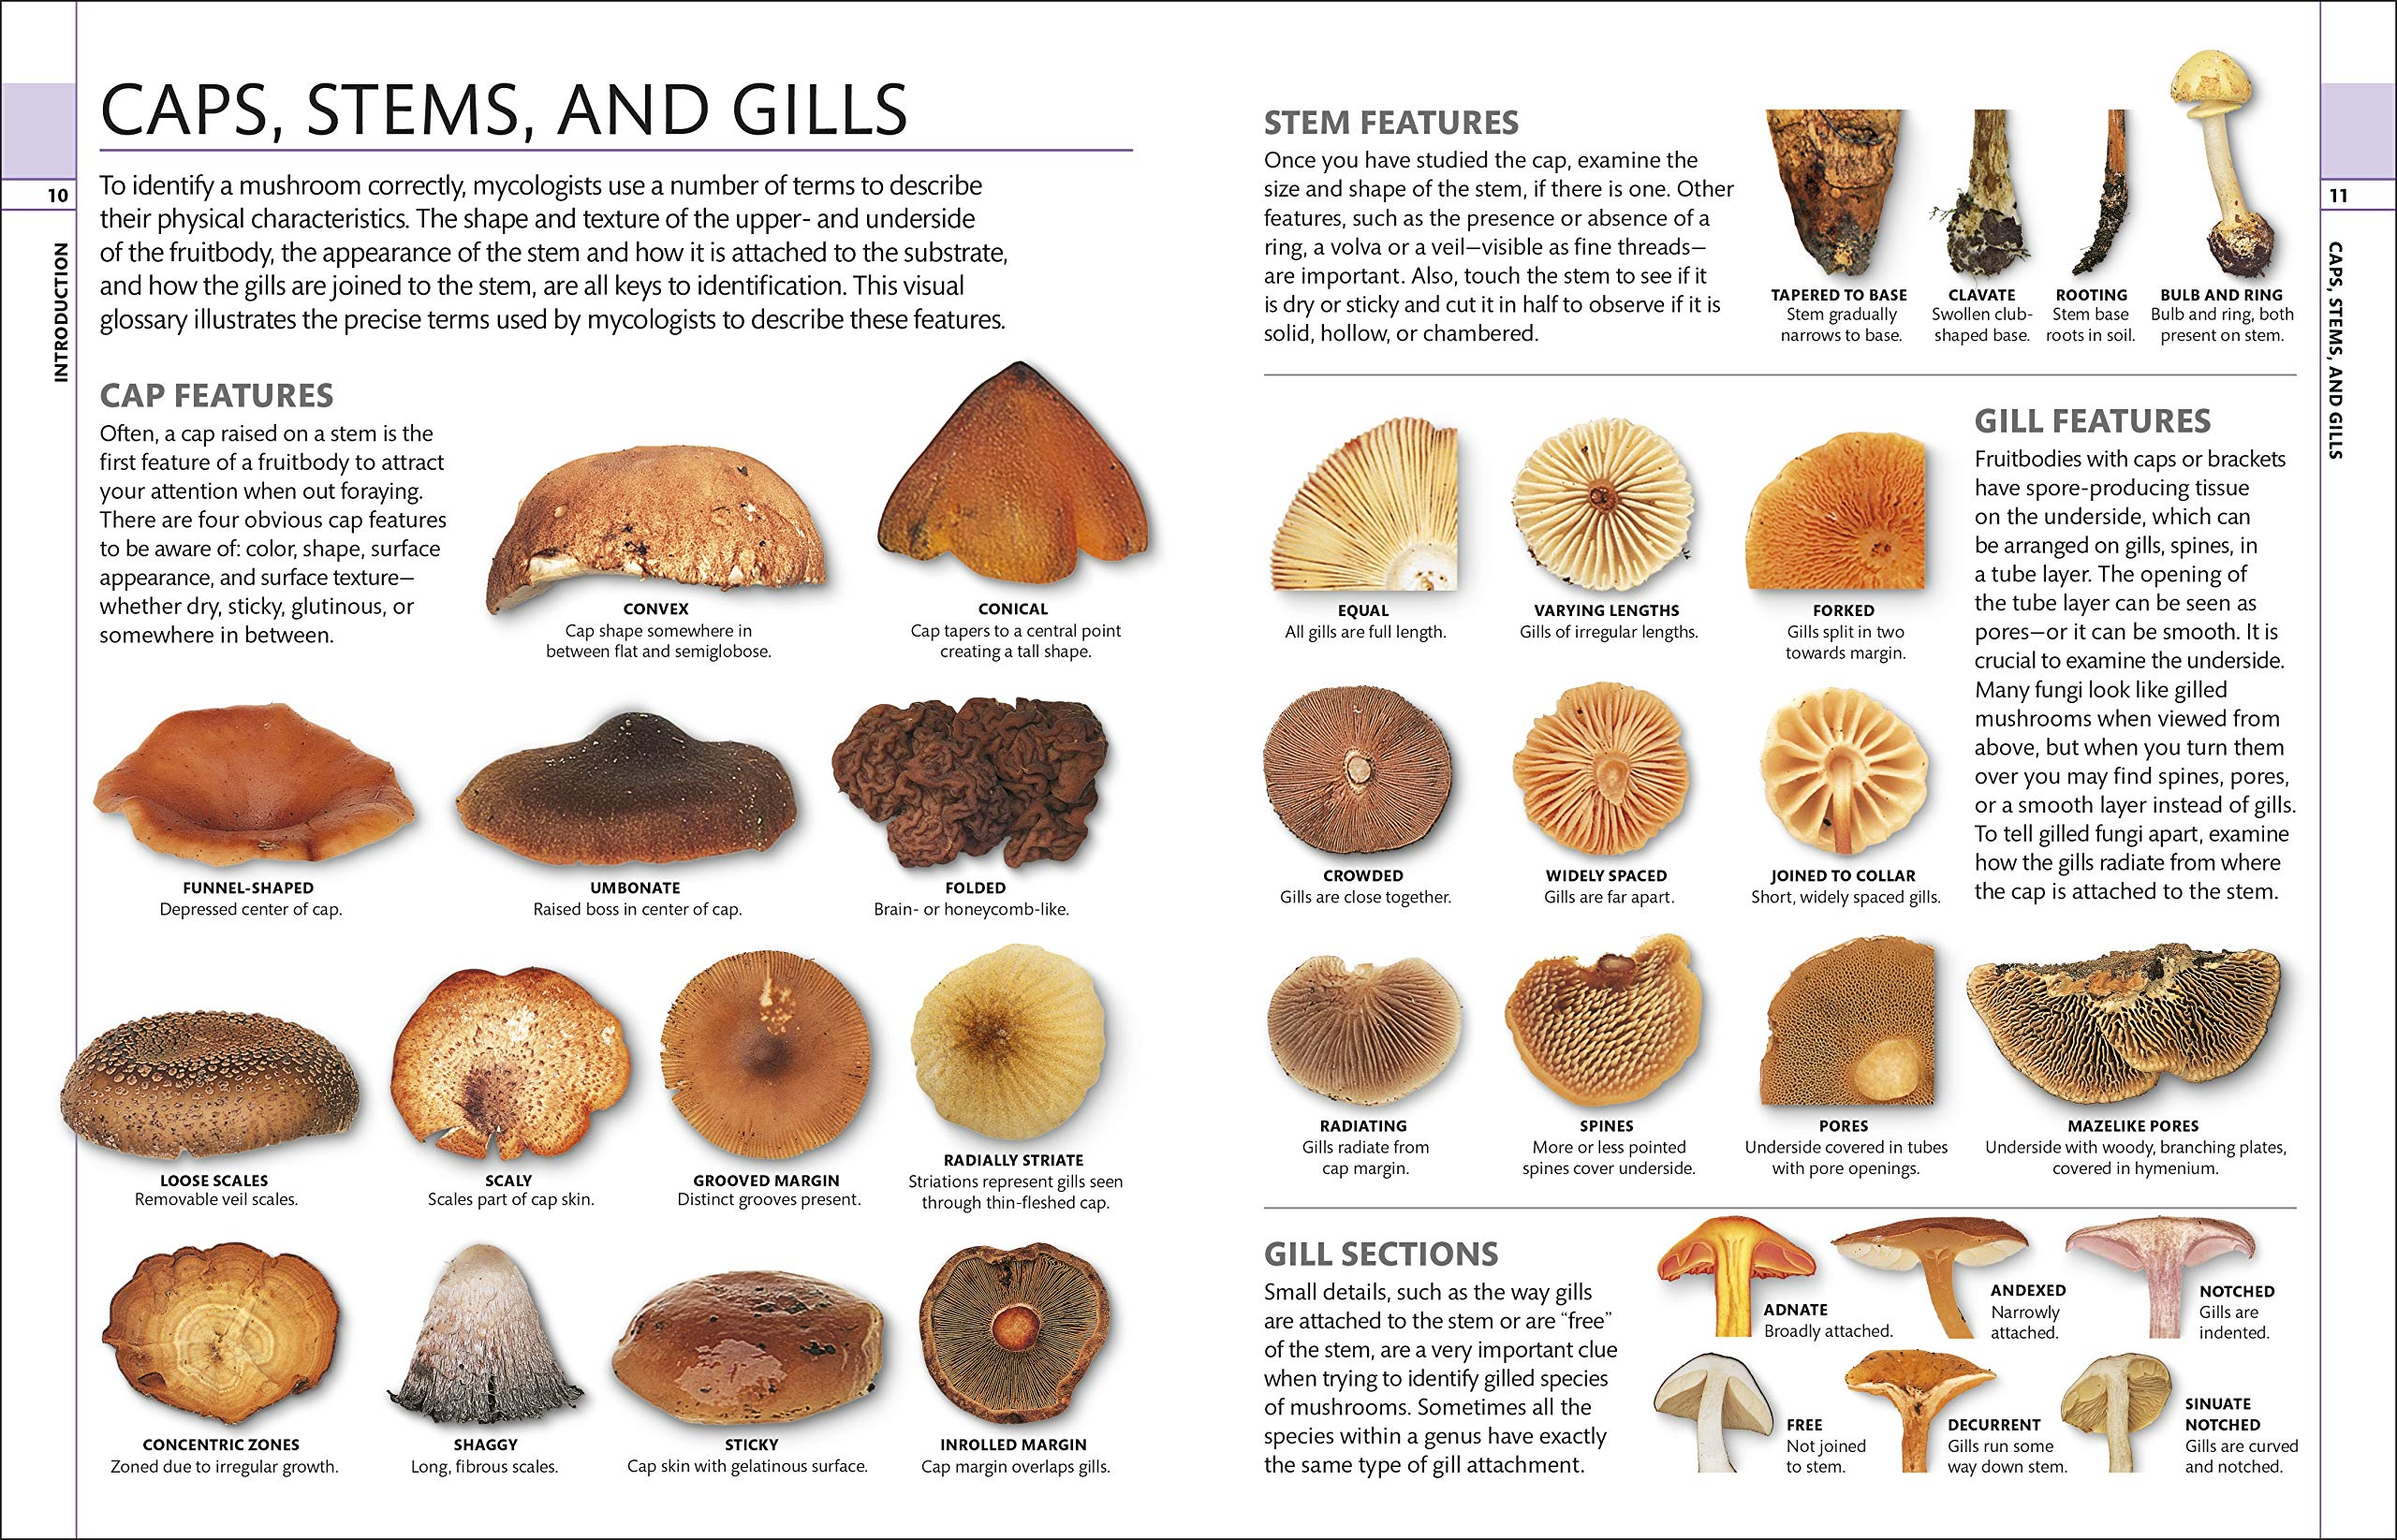 Mushrooms: How to Identify and Gather Wild Mushrooms and